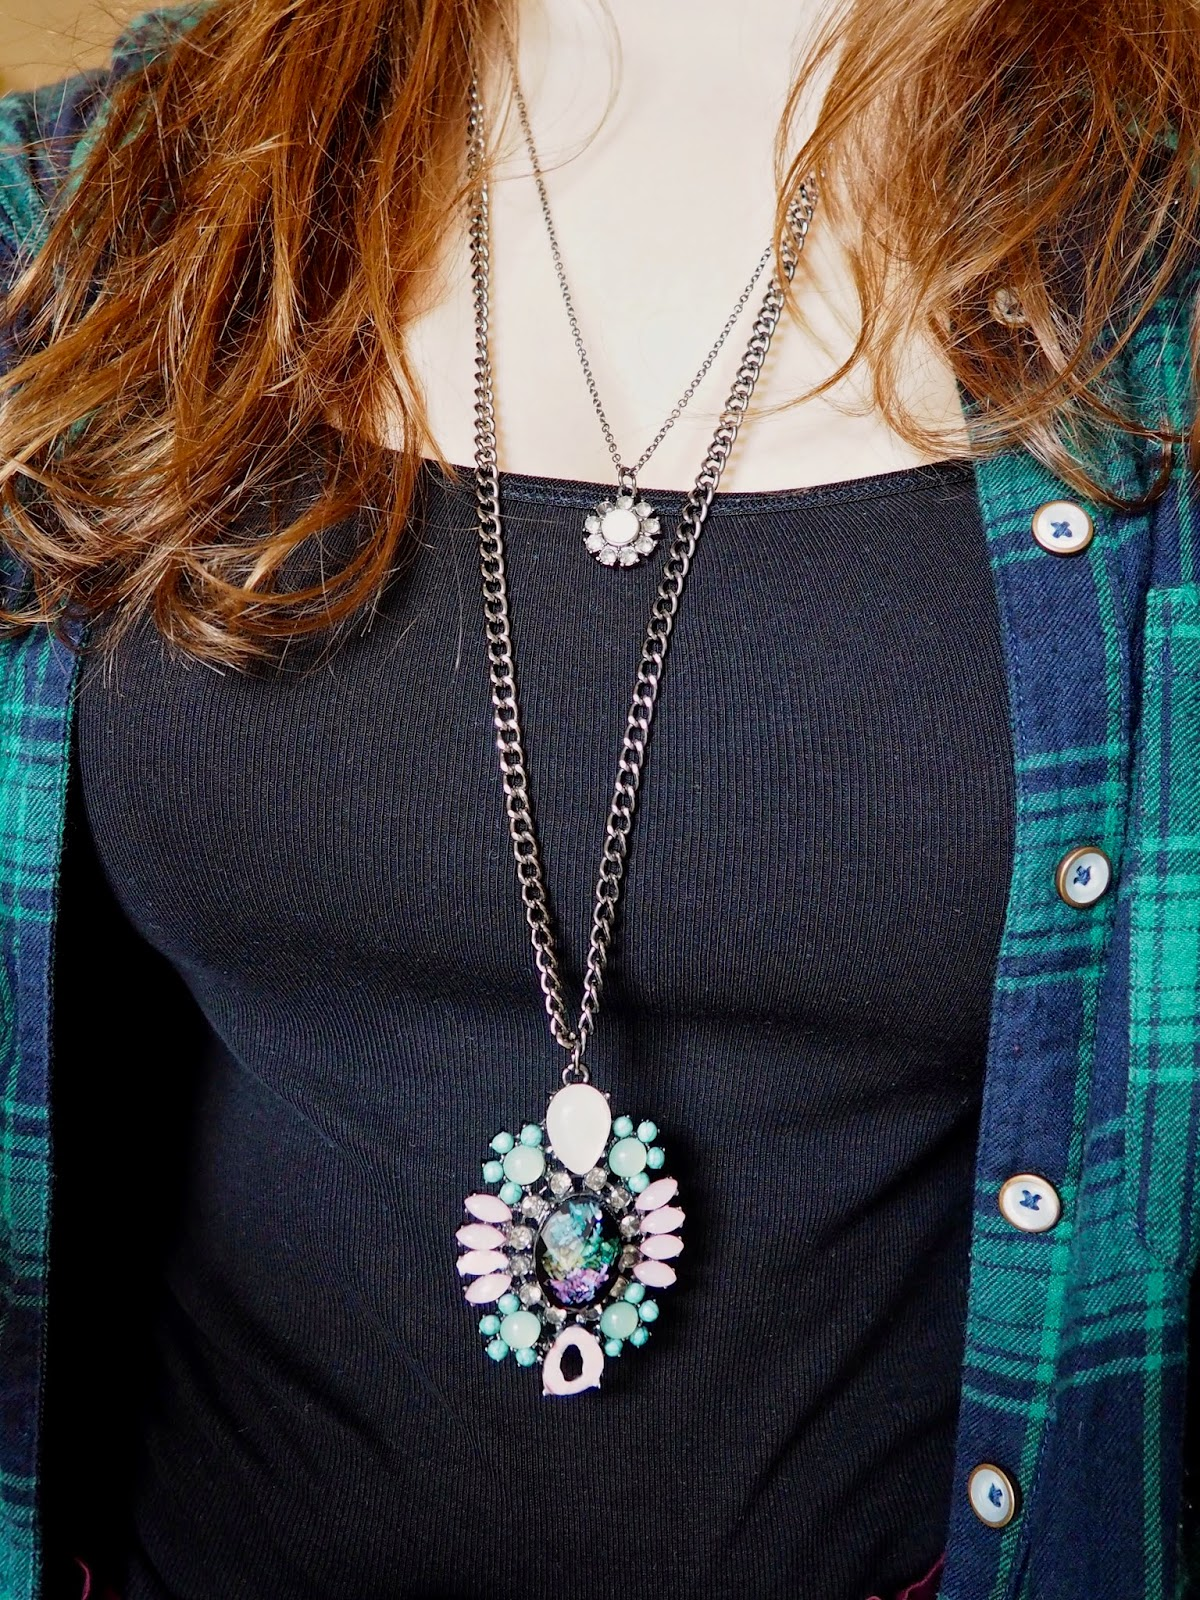 Statement Pieces outfit jewellery details | chunky layered flower shaped necklaces, with green, blue and pink jewels and stones